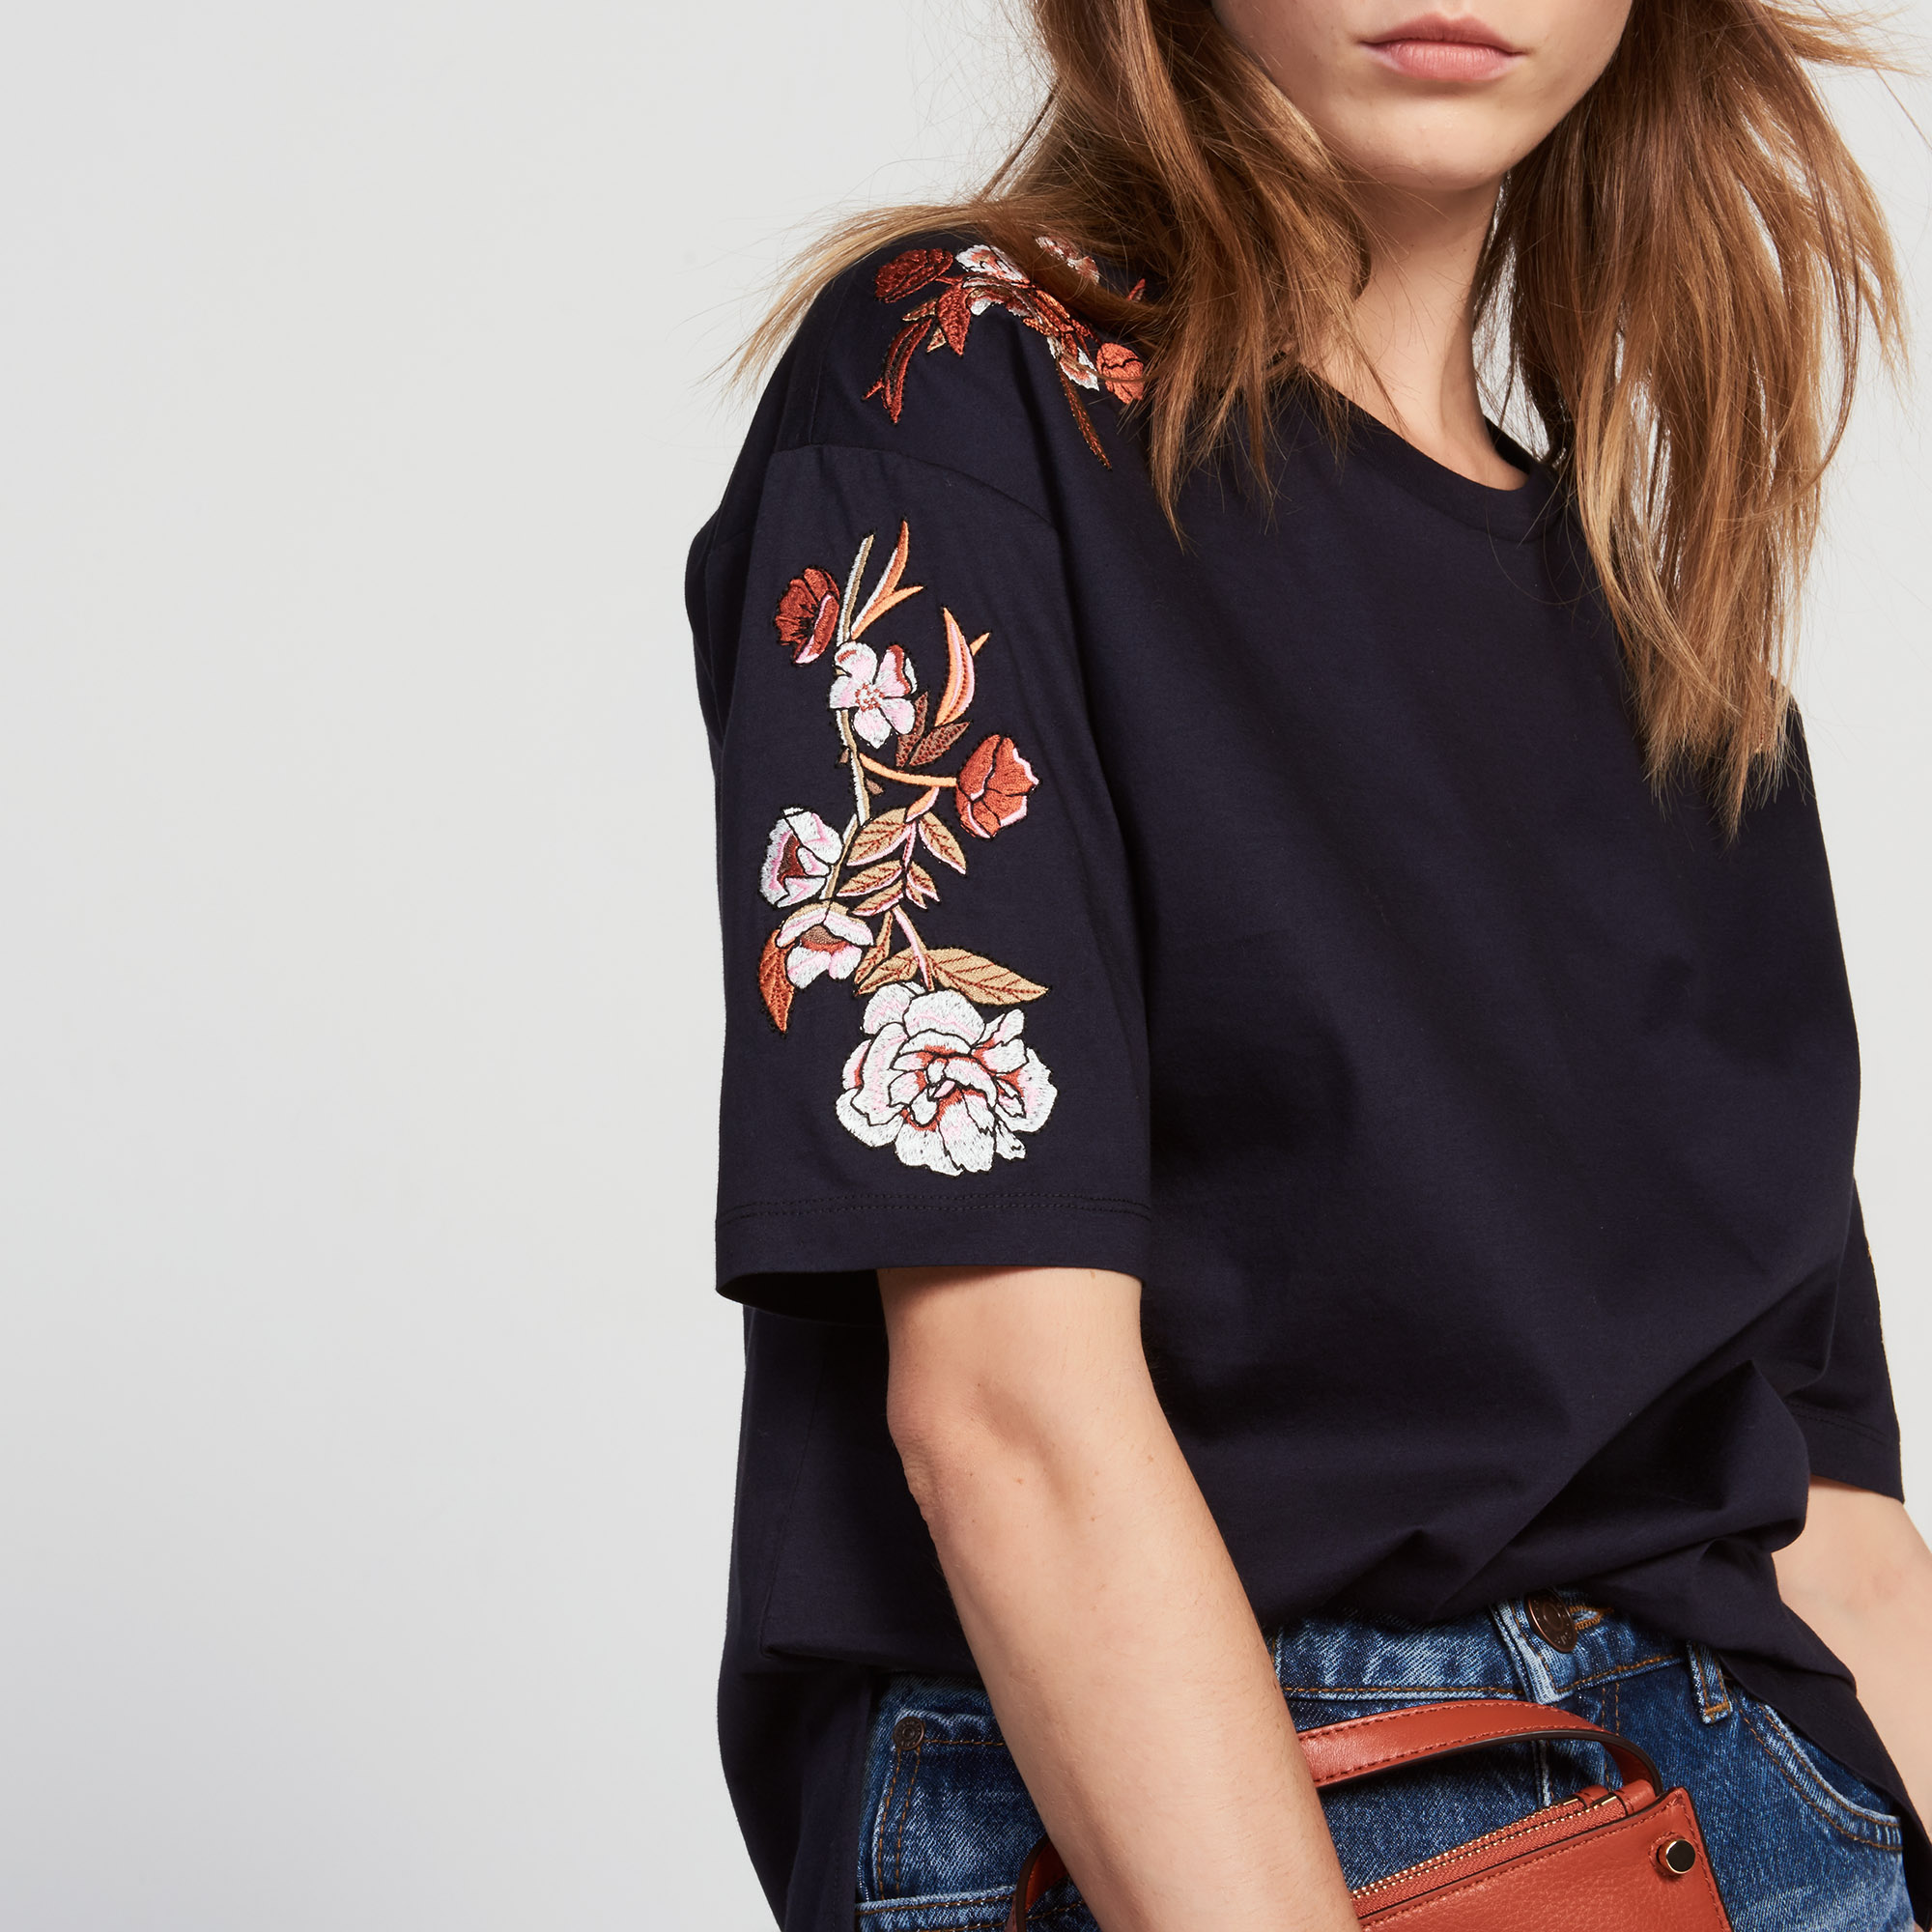 Cotton t shirt with floral embroidery nos produits